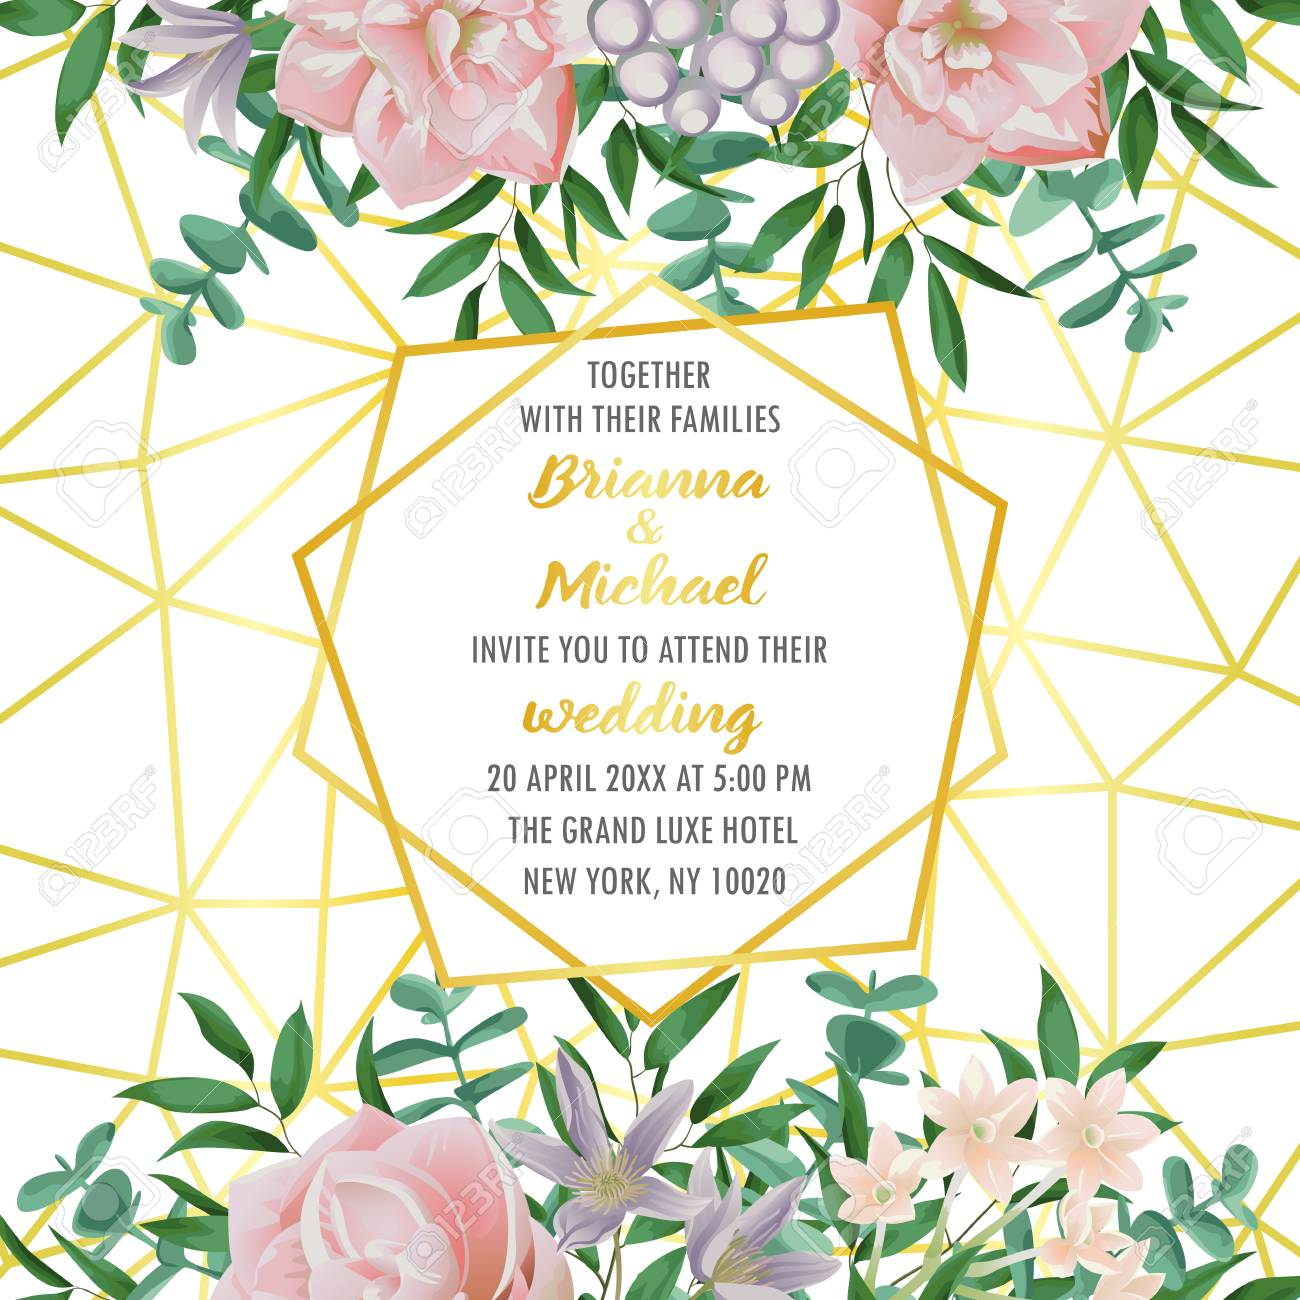 Floral Wedding Invitation With Gold Geometric Frame Flowers